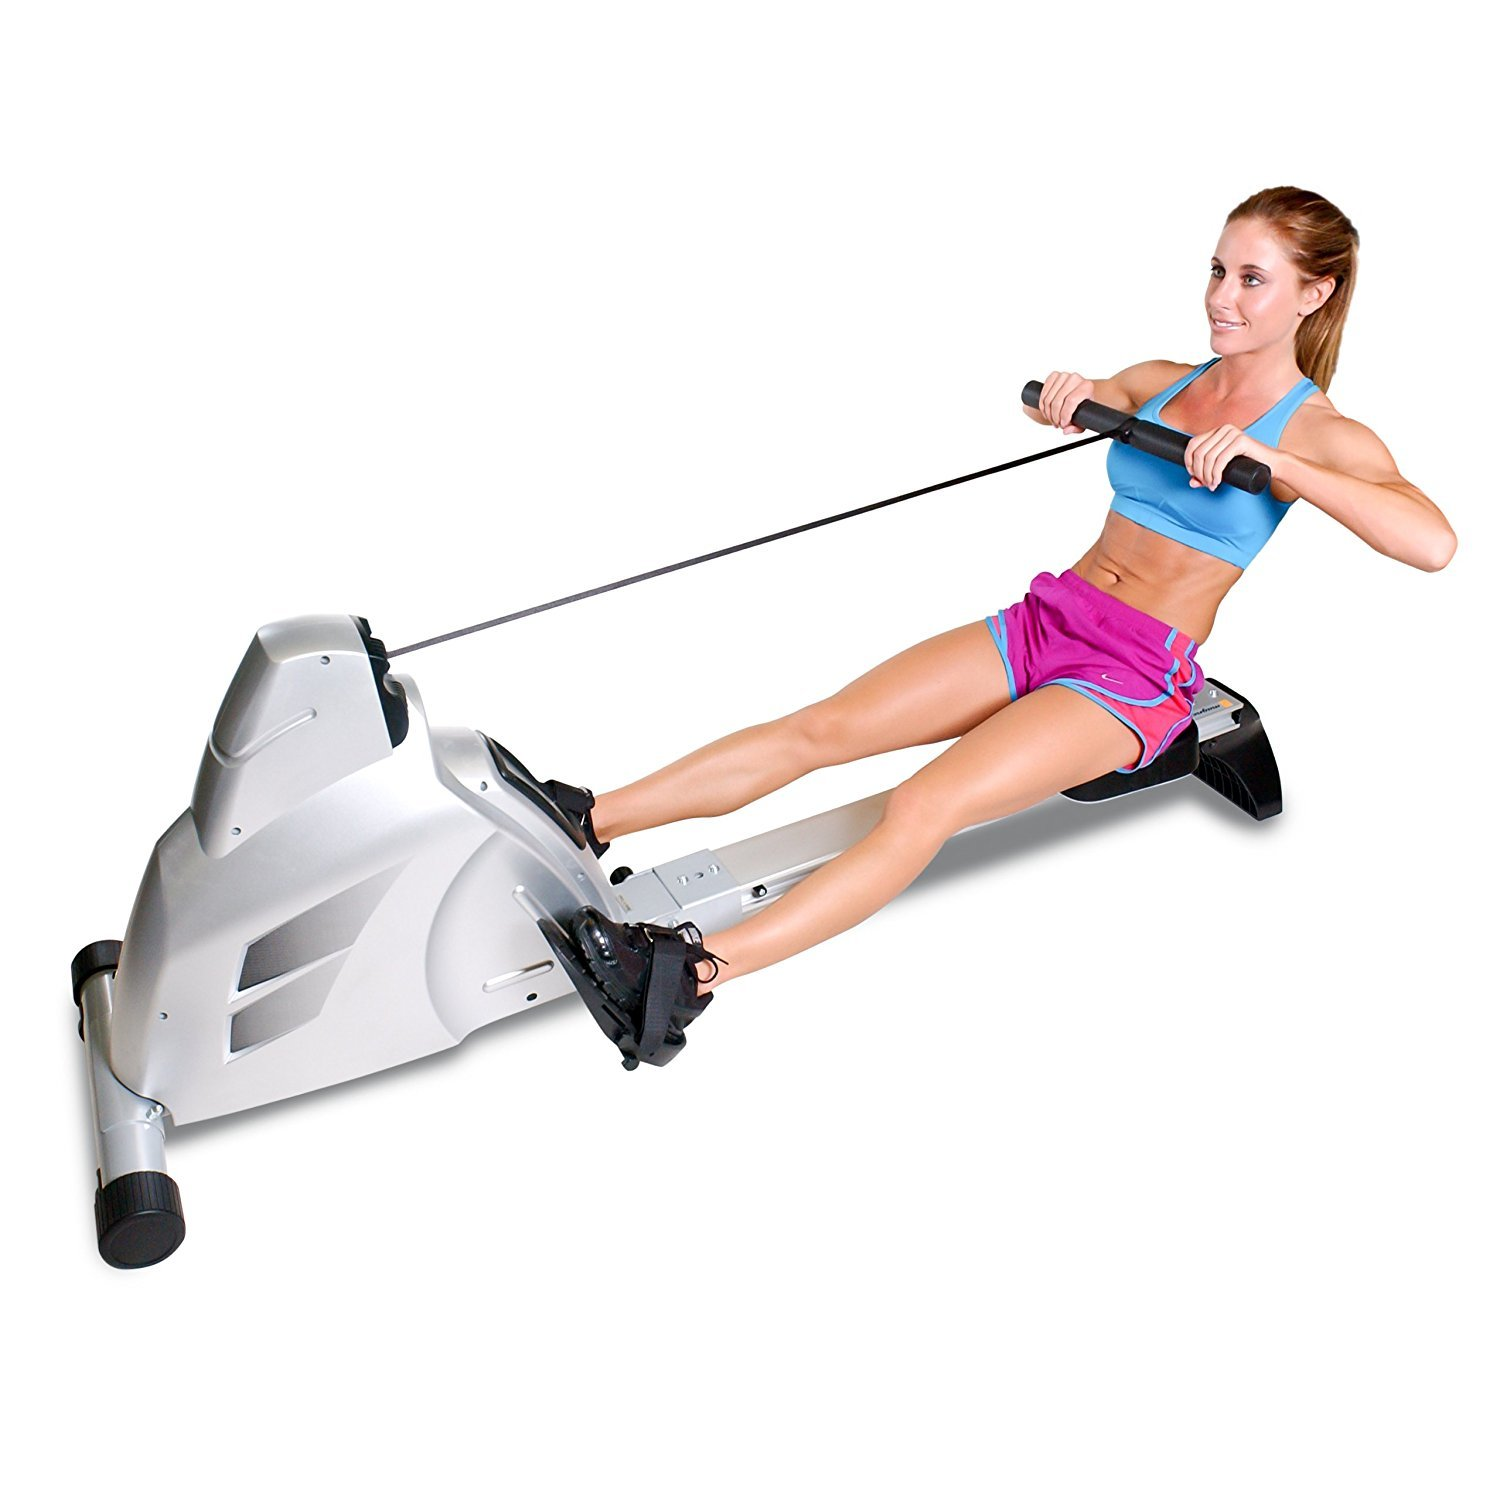 Velocity Exercise Magnetic Rower in use by woman